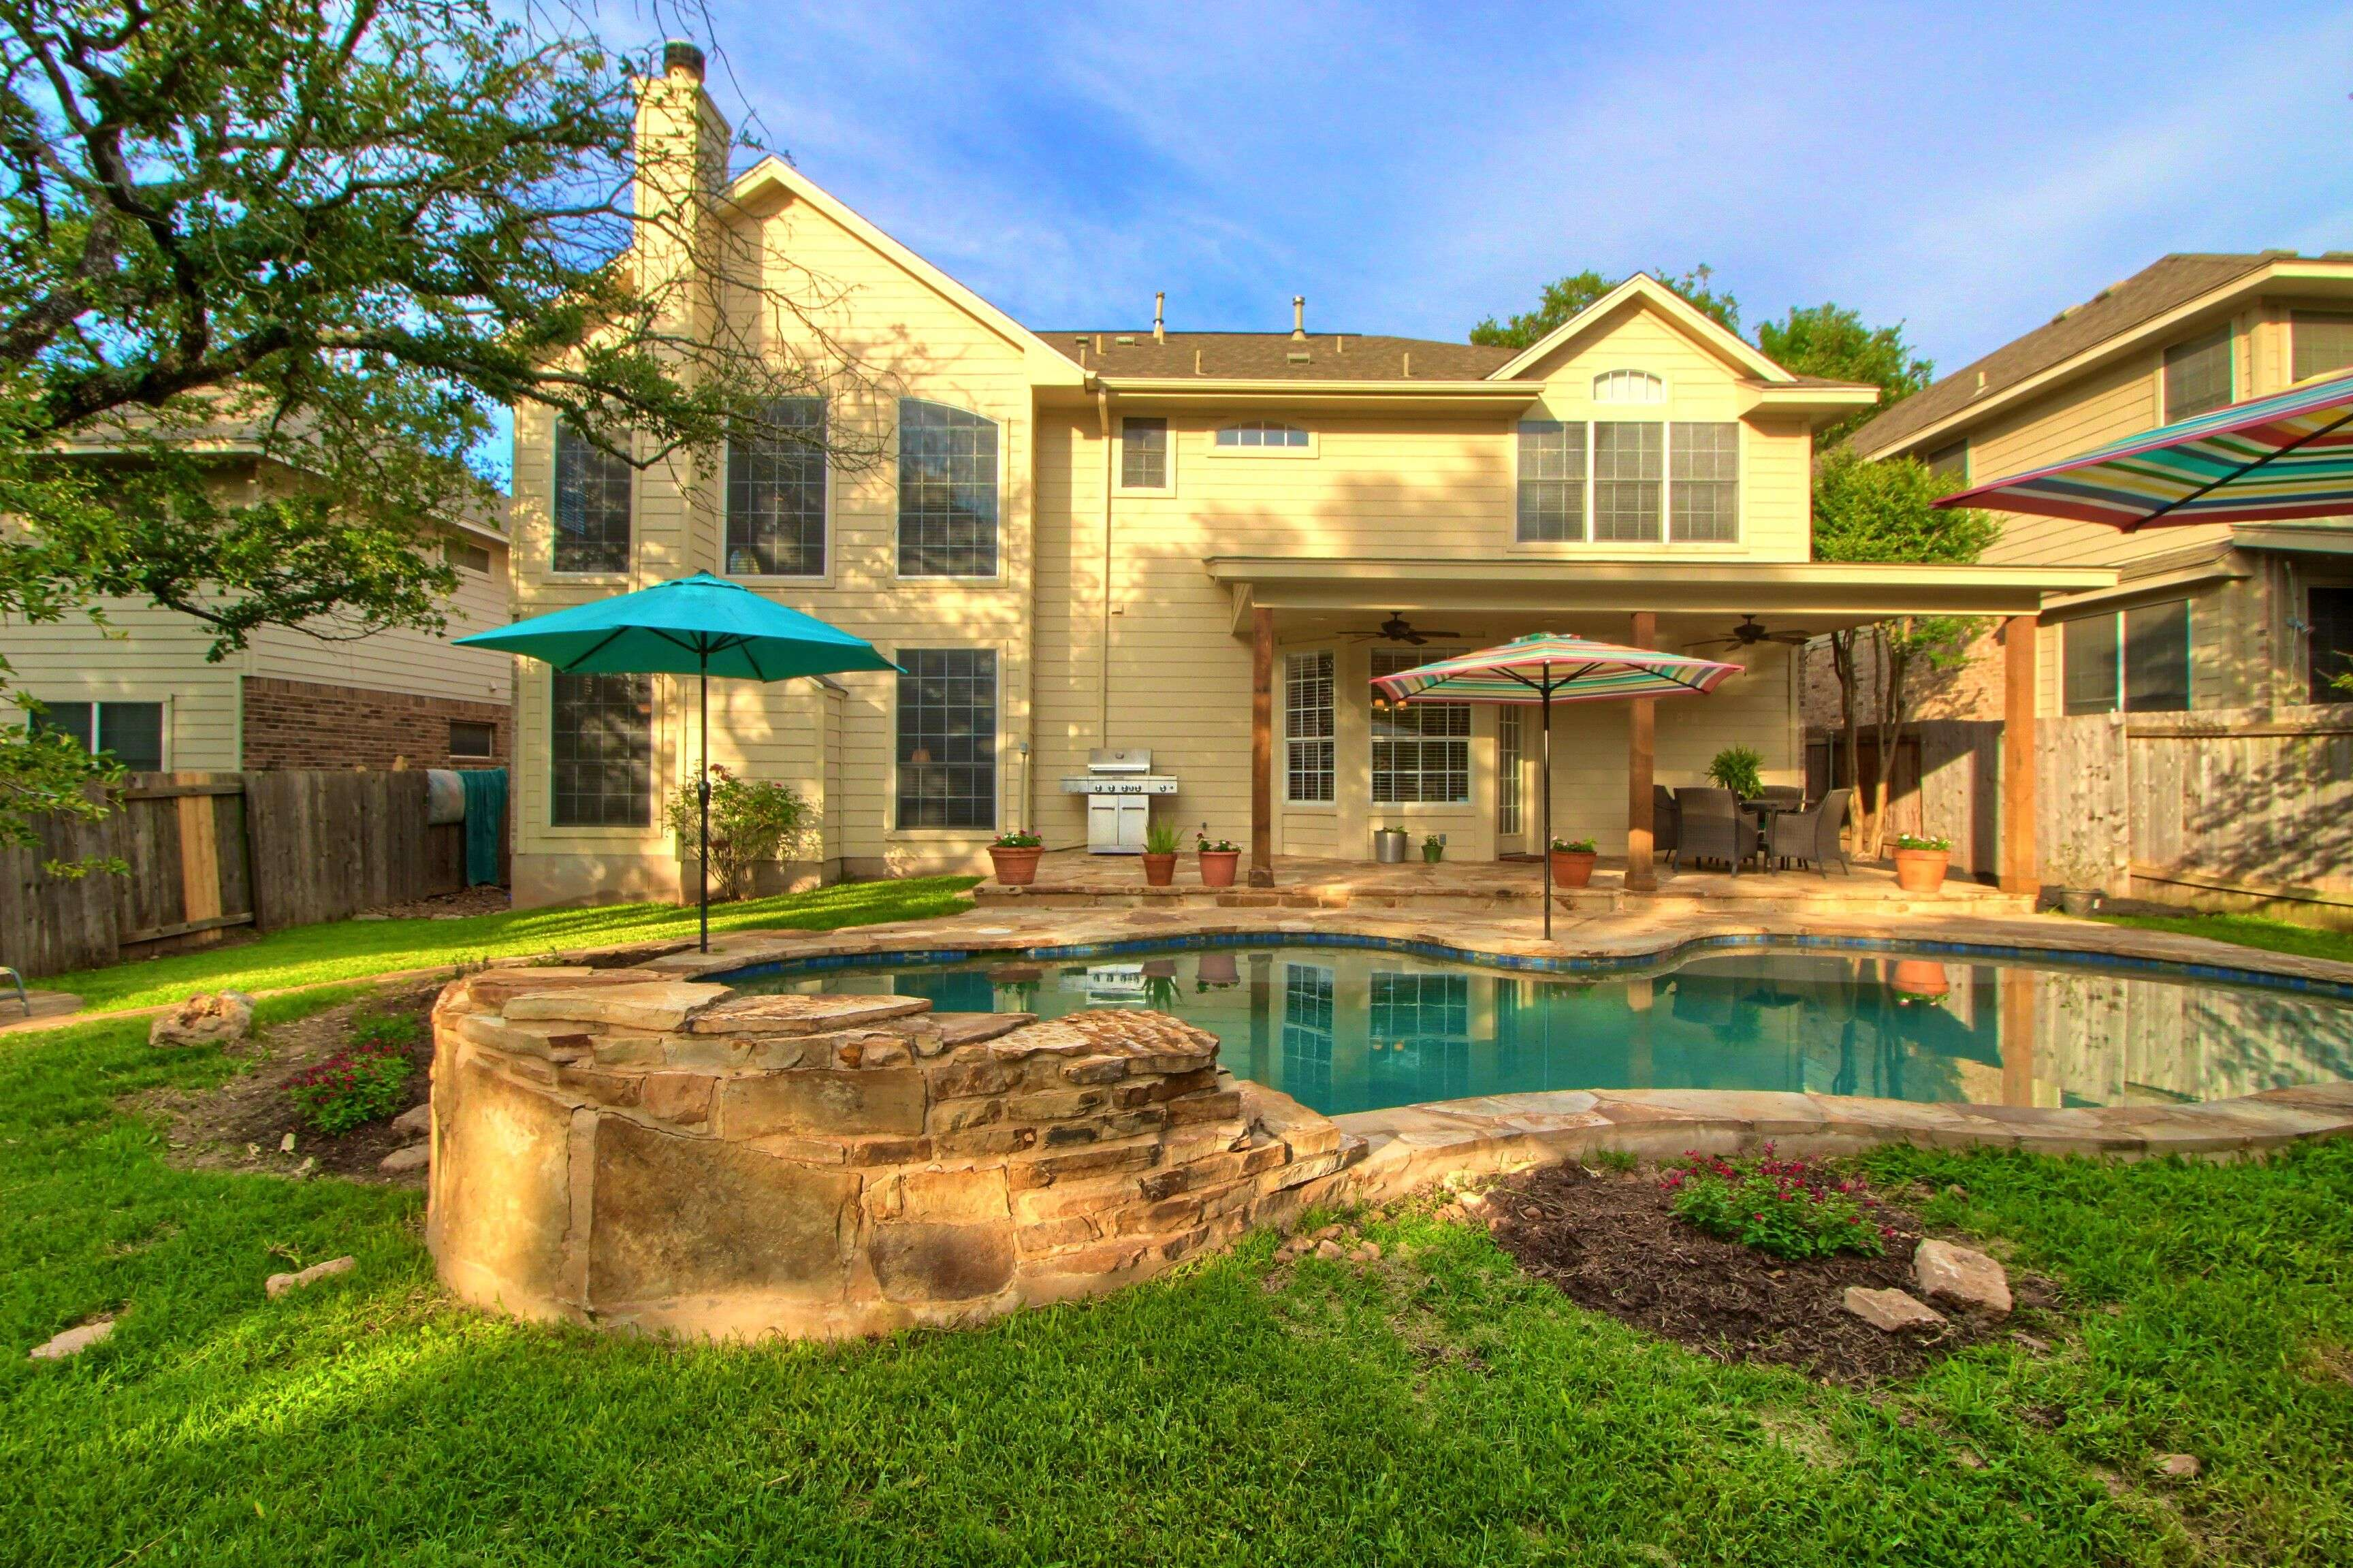 Austin TX home with swimming pool for sale